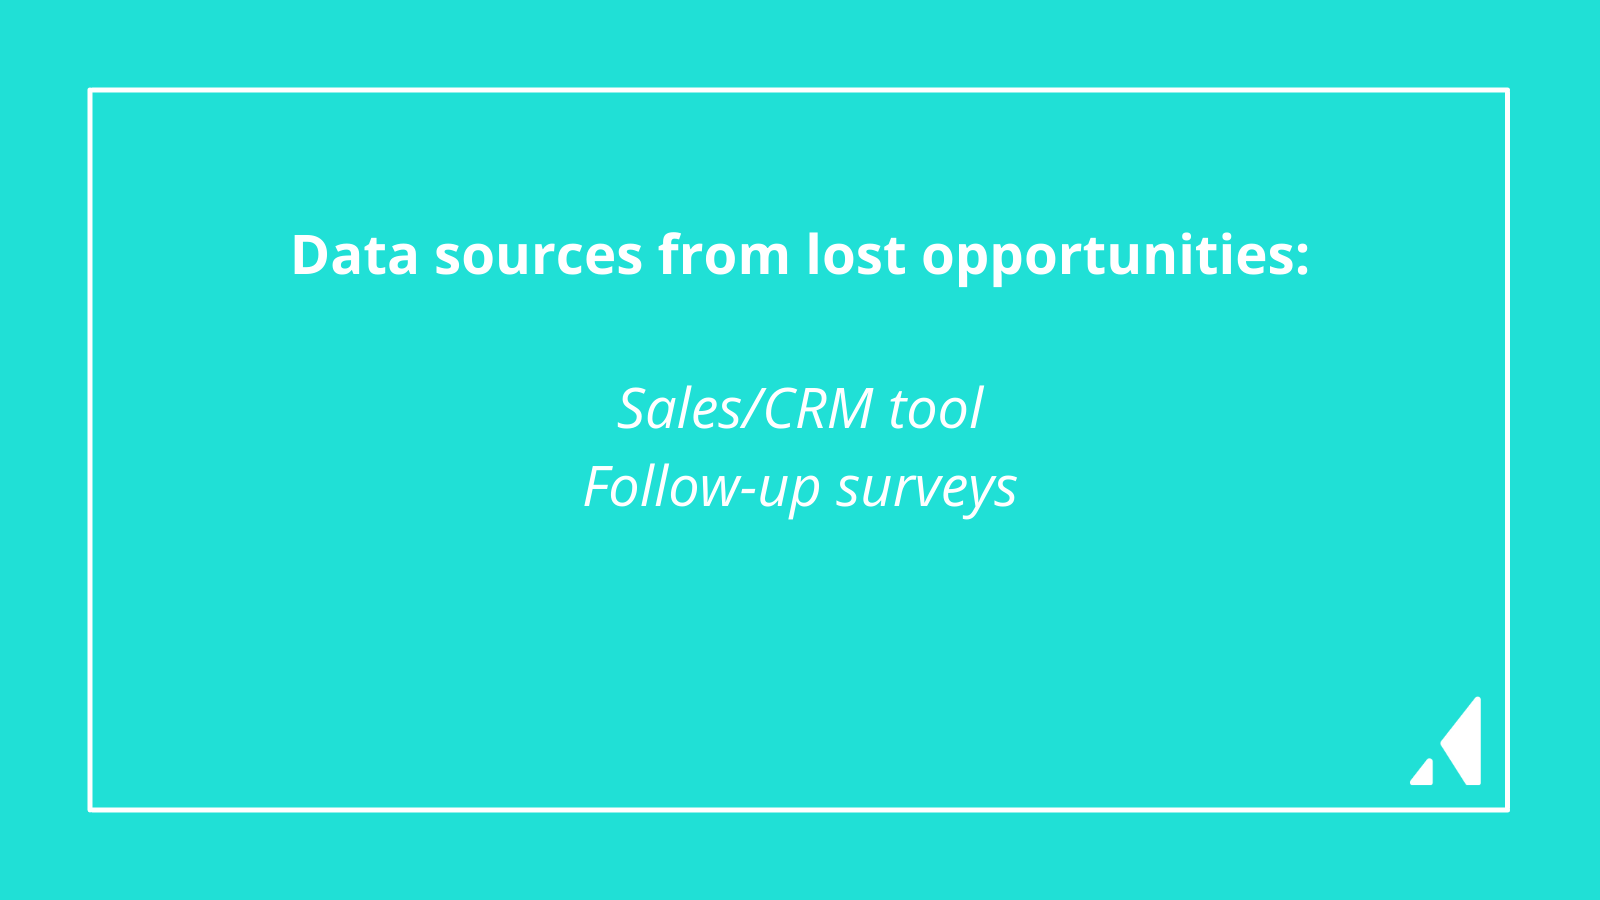 Data sources from lost opportunities